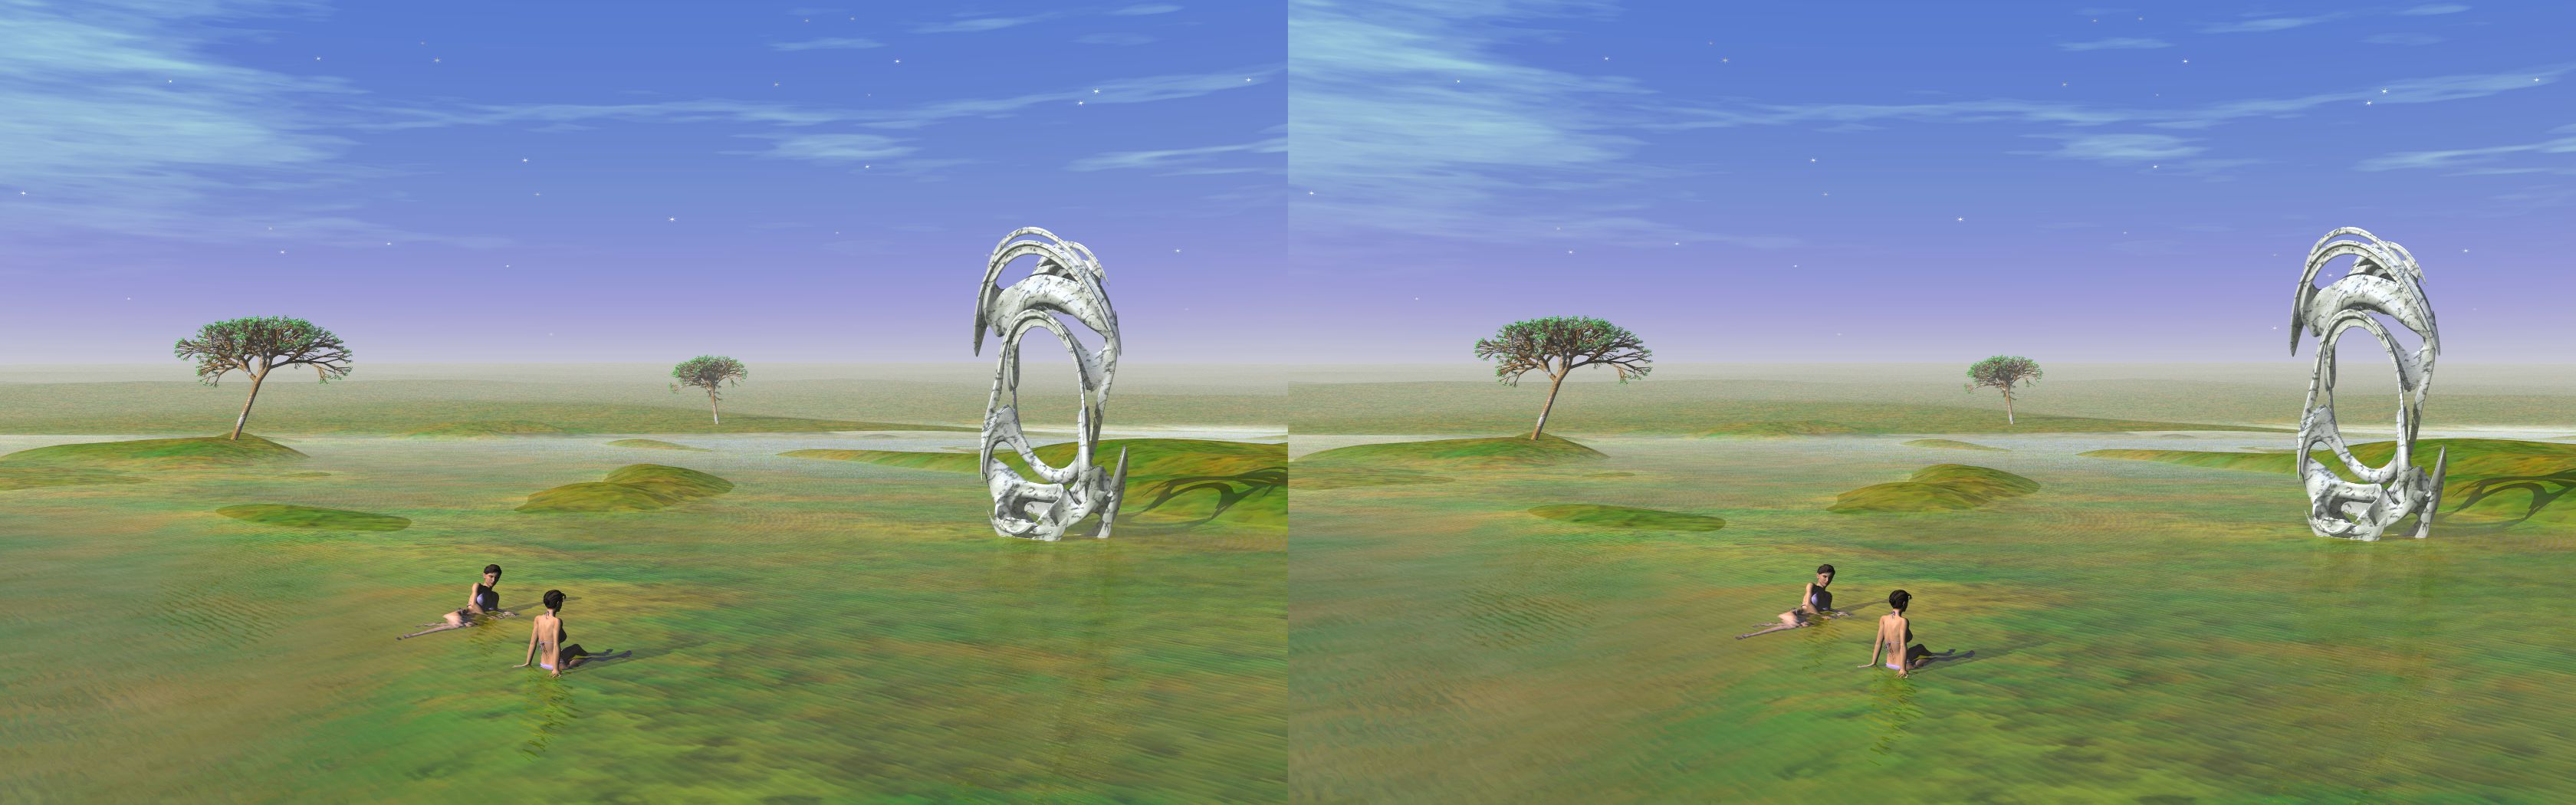 Water Meadows - 3D stereo JPS image